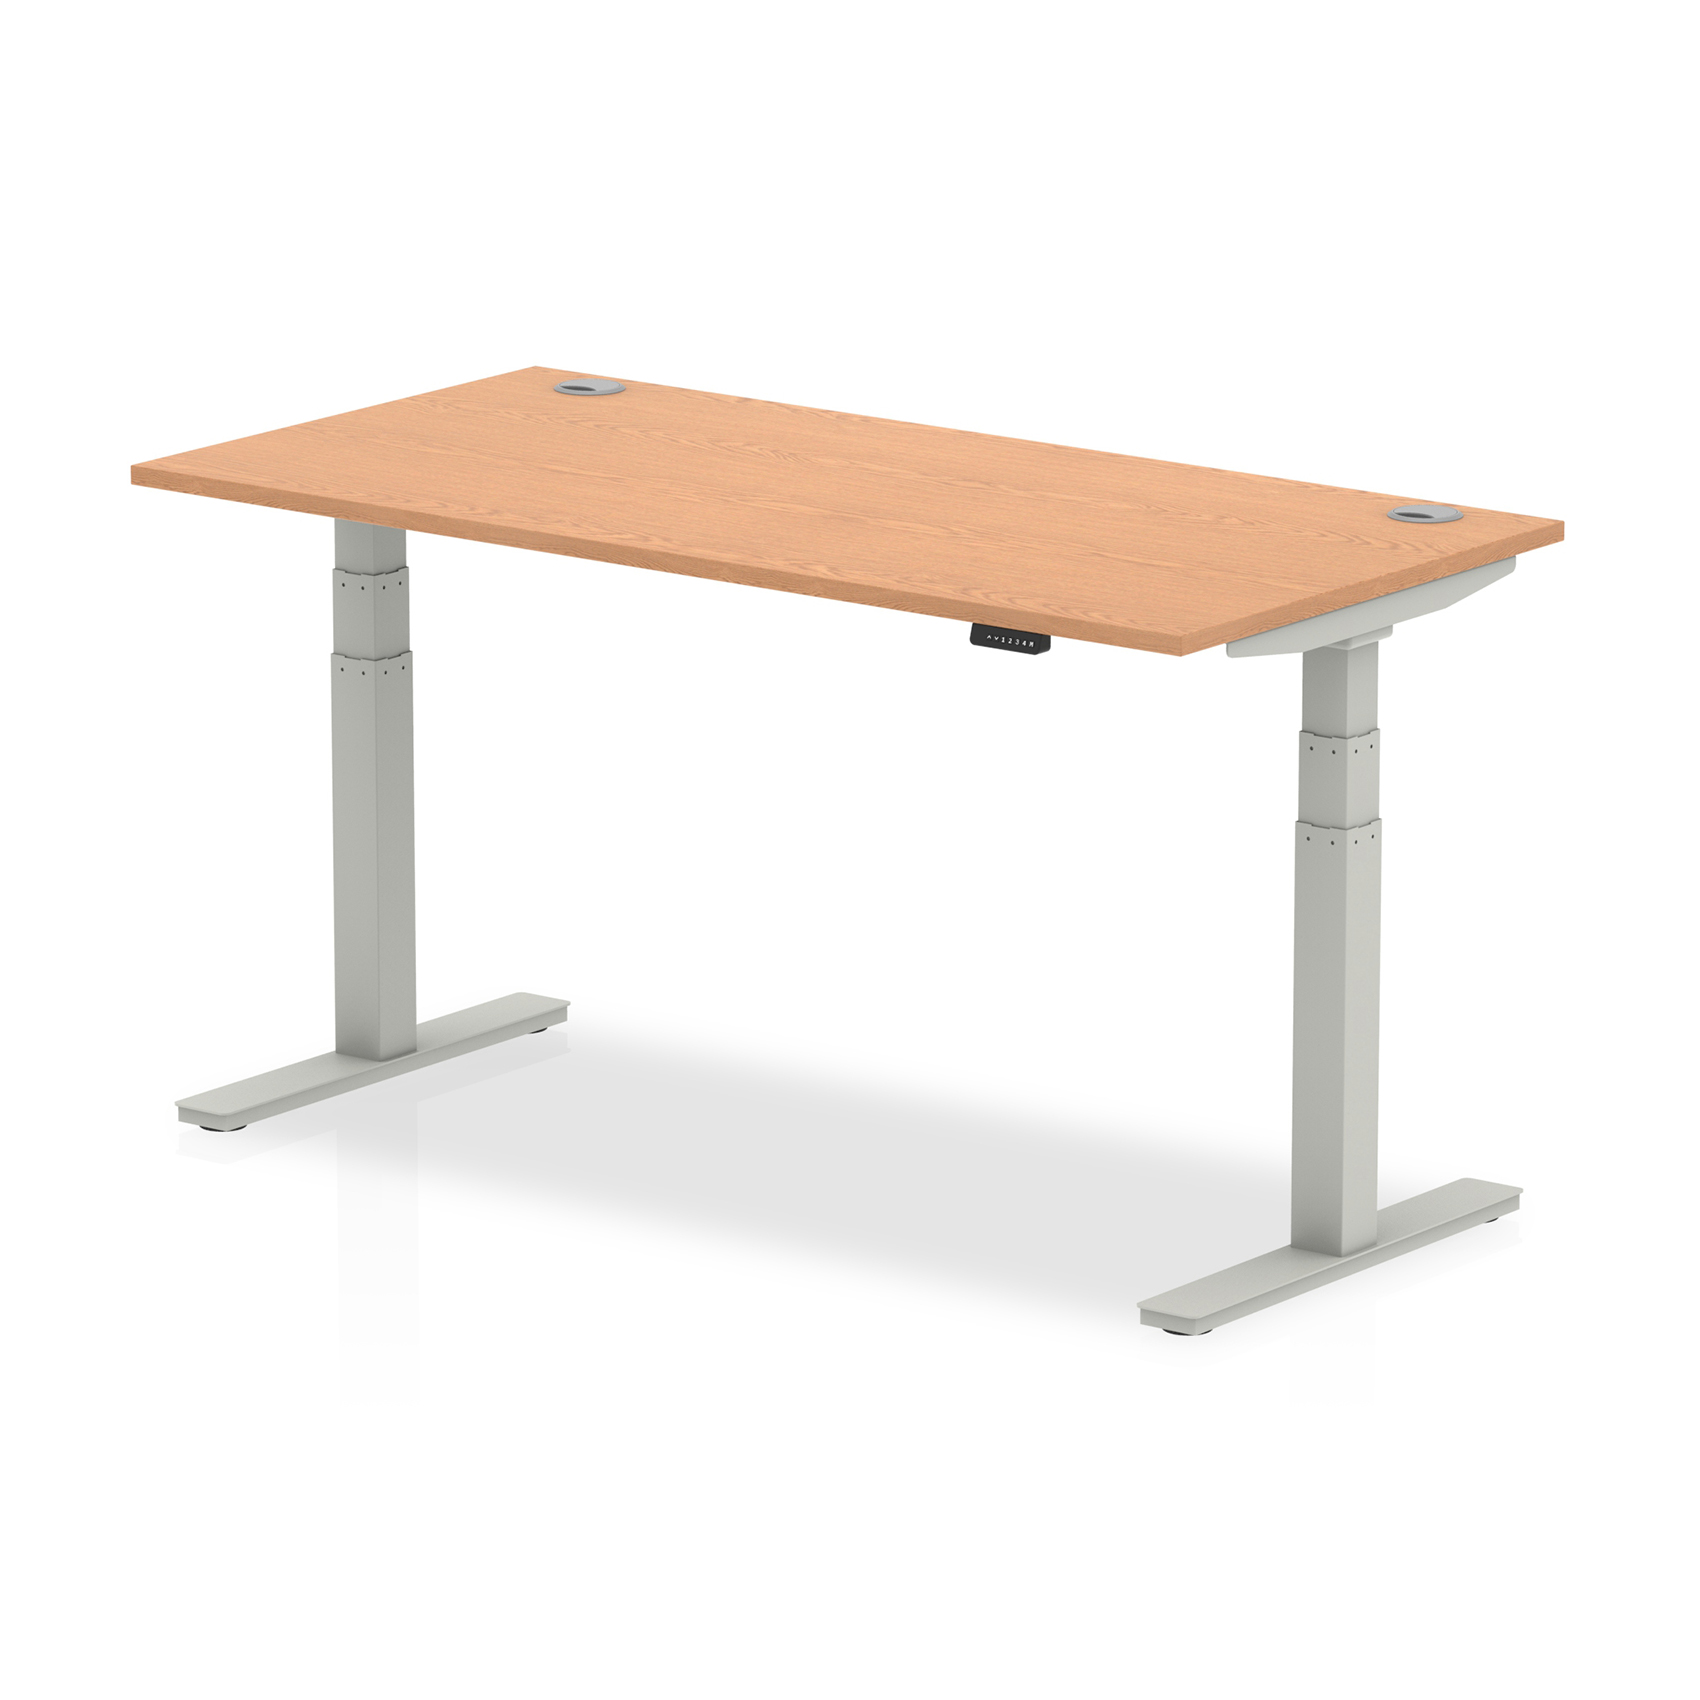 Trexus Sit Stand Desk With Cable Ports Silver Legs 1600x800mm Oak Ref HA01099